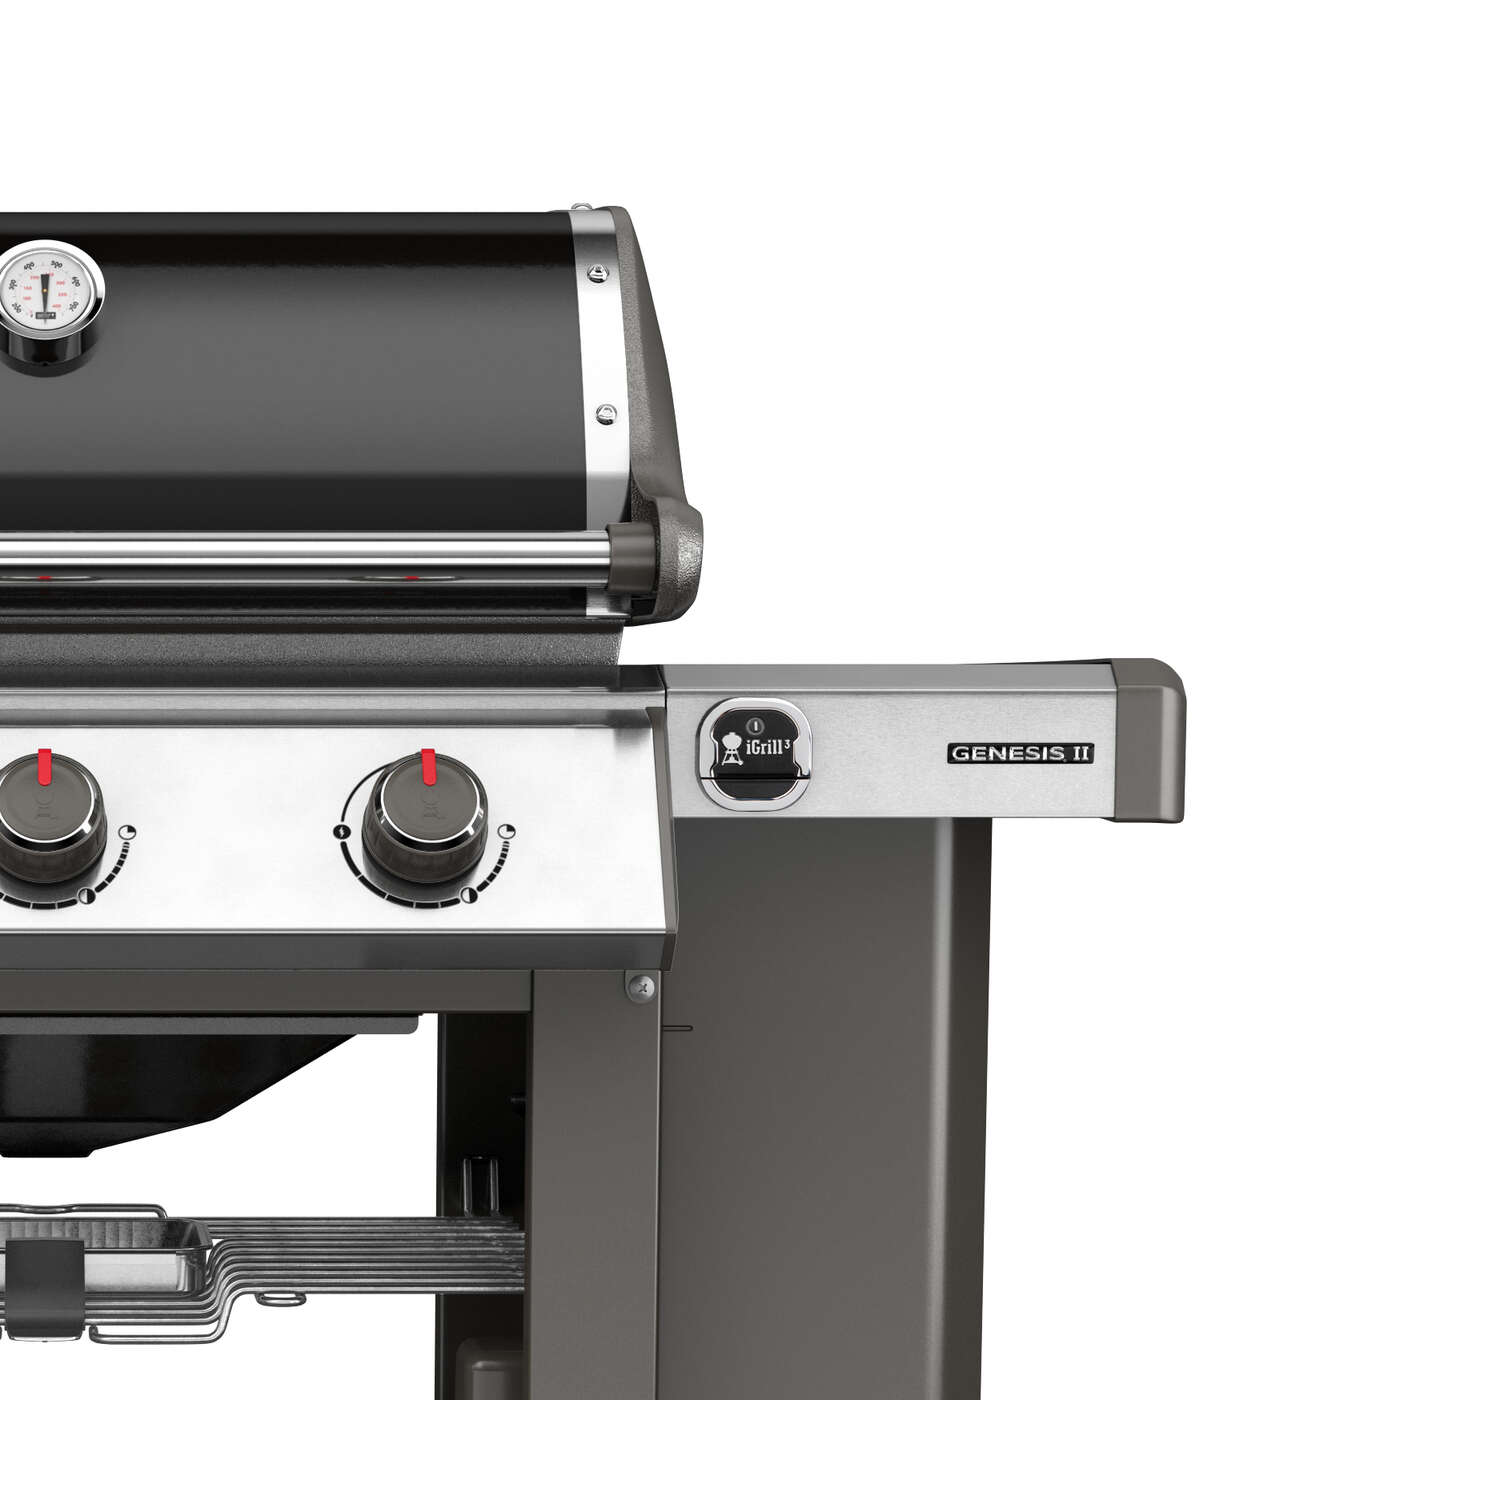 Weber  Genesis II E-610  6 burners Natural Gas  Black  Grill  60000 BTU